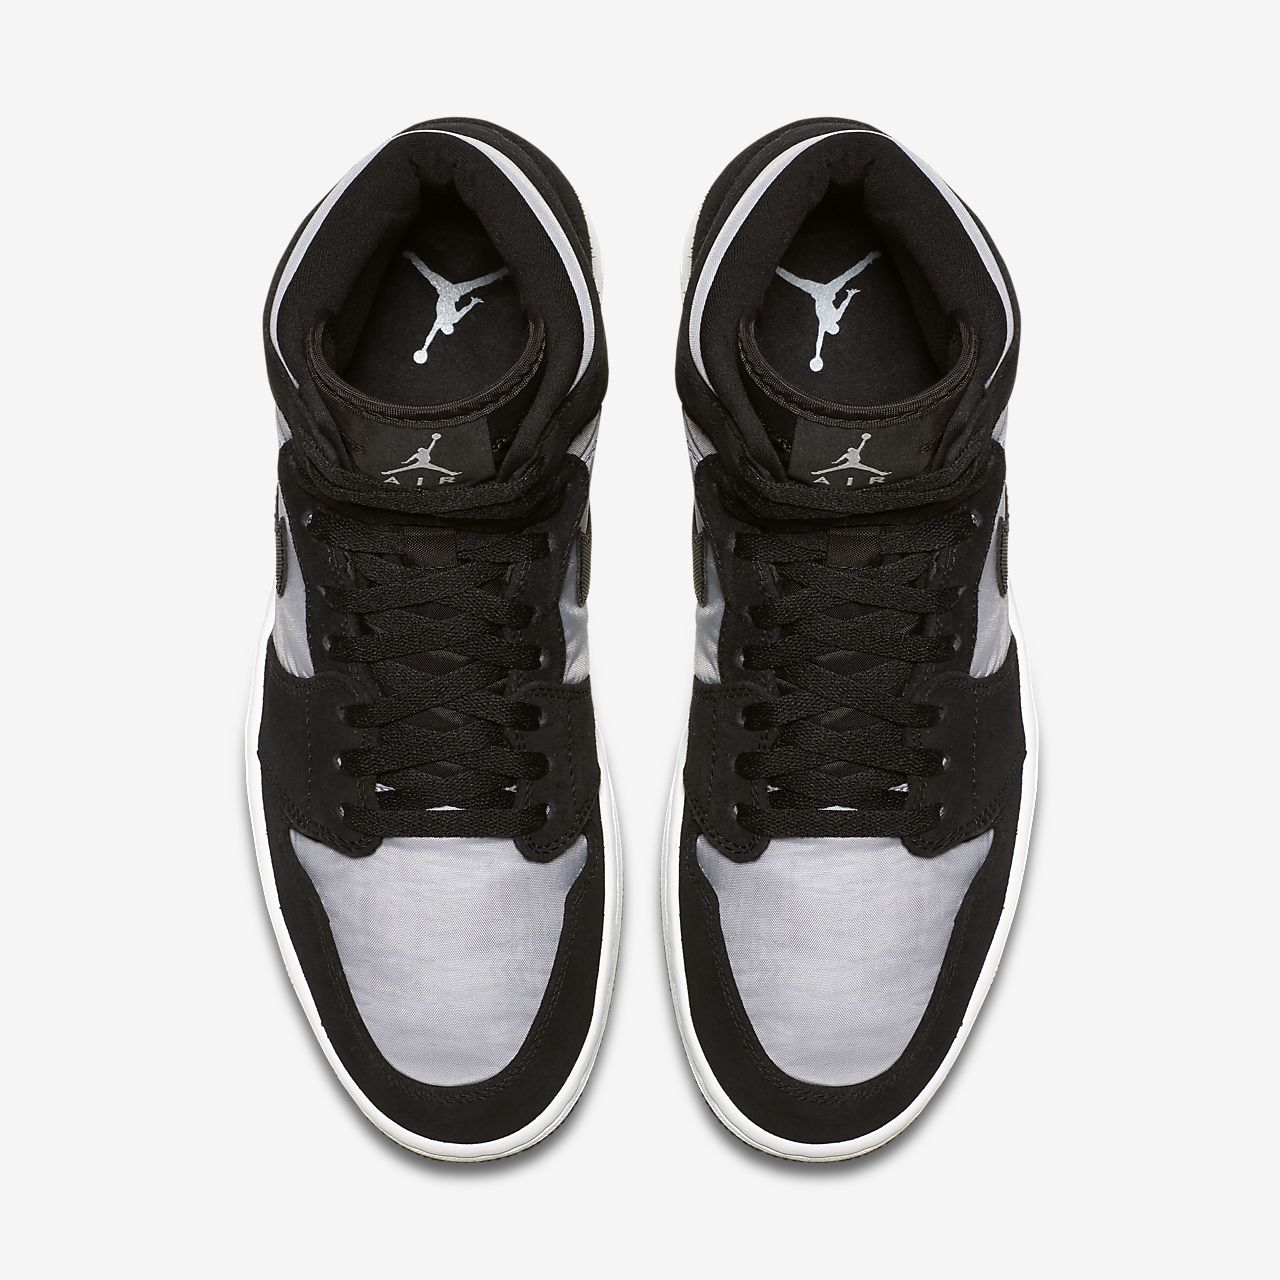 76ad1a10c25 Air Jordan 1 Retro High Premium Men s Shoe. Nike.com SG